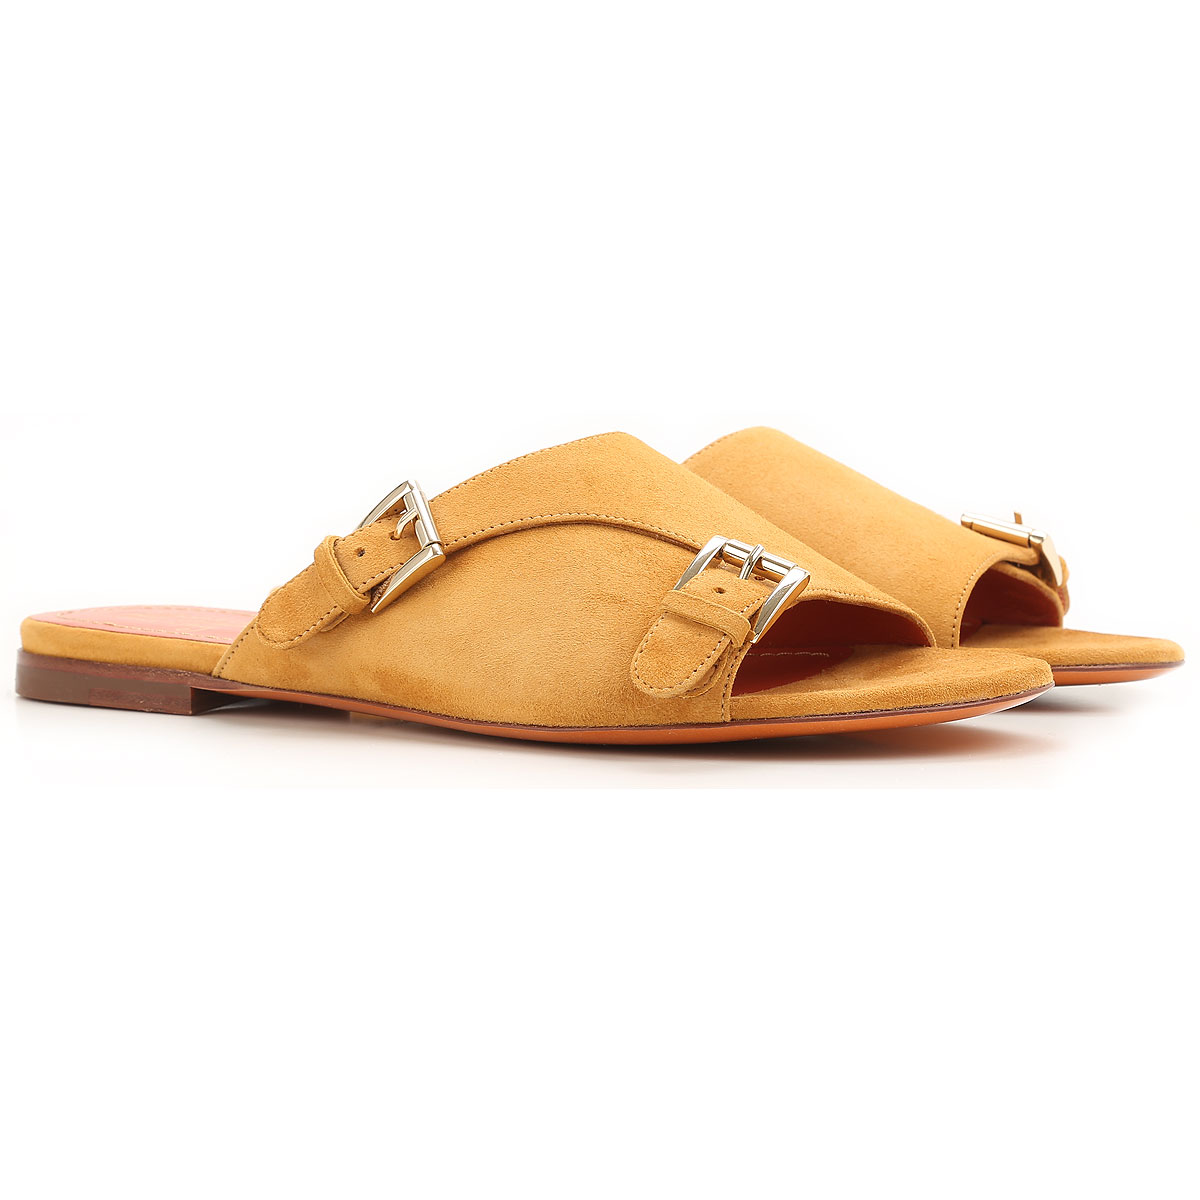 Santoni Sandals for Women On Sale in Outlet, Mustard, Suede leather, 2019, 8.5 9